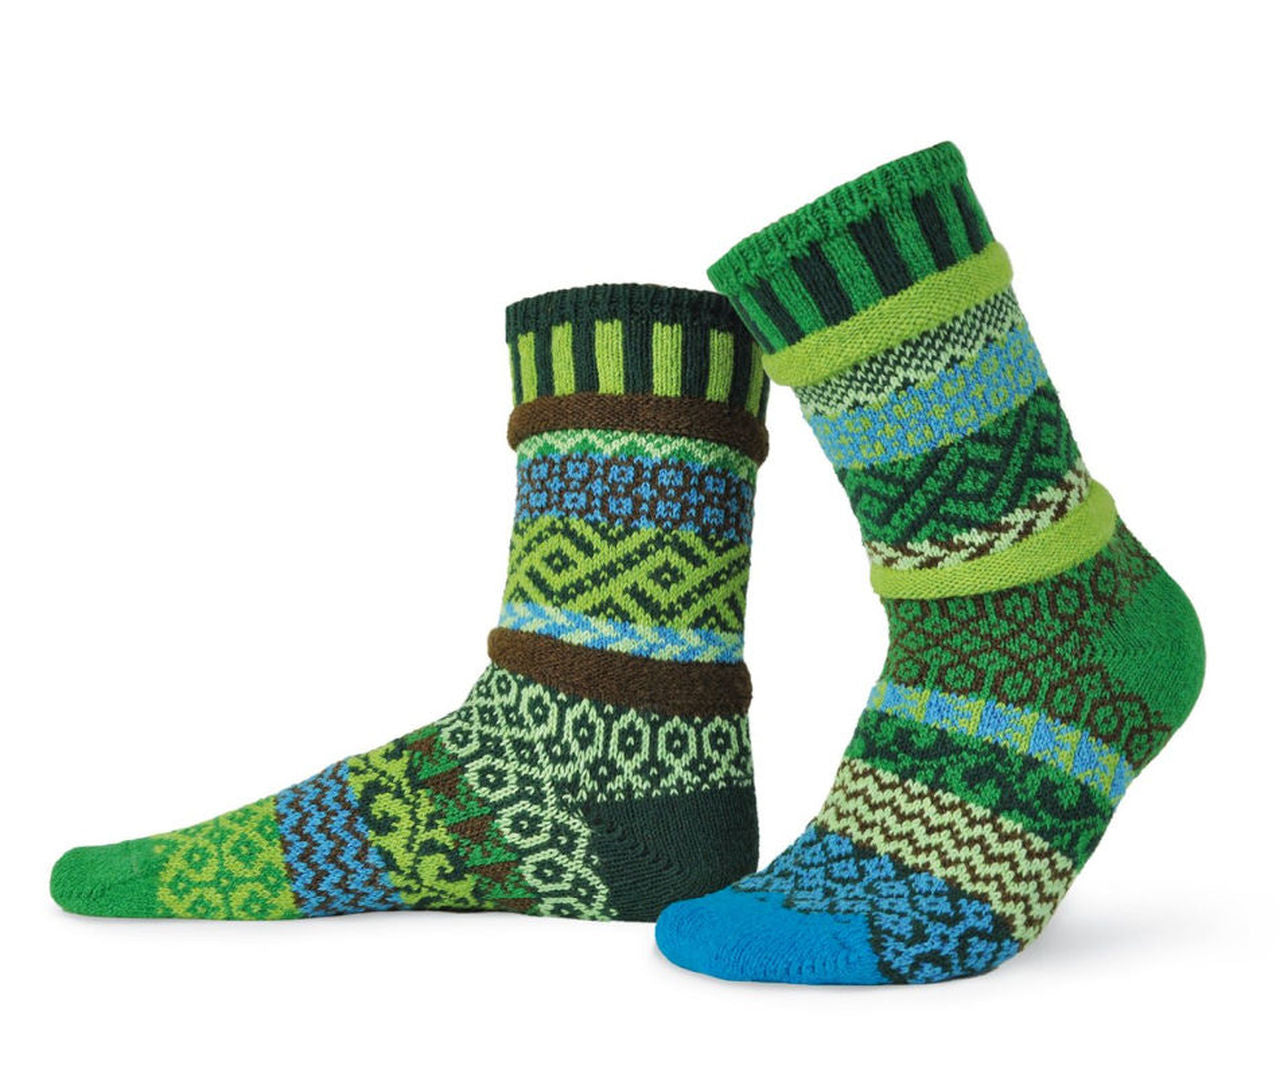 Earth Crew Socks - Sol Mate Socks